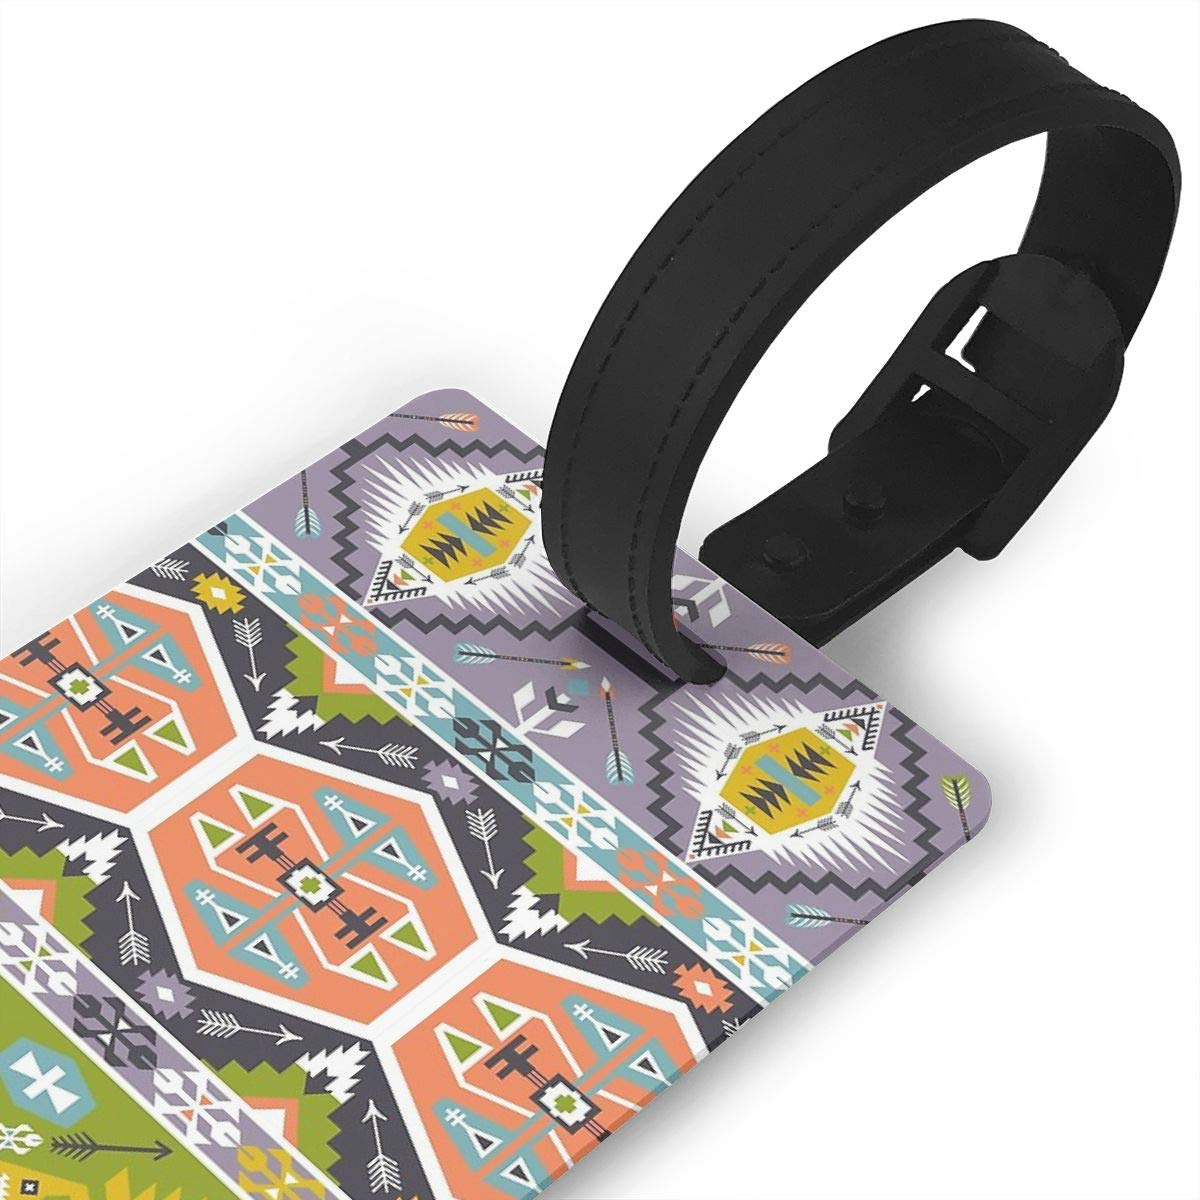 Seamless Aztec Pattern With Geometric Elements Luggage Tags Suitcase Labels Bag Travel Accessories Set of 2